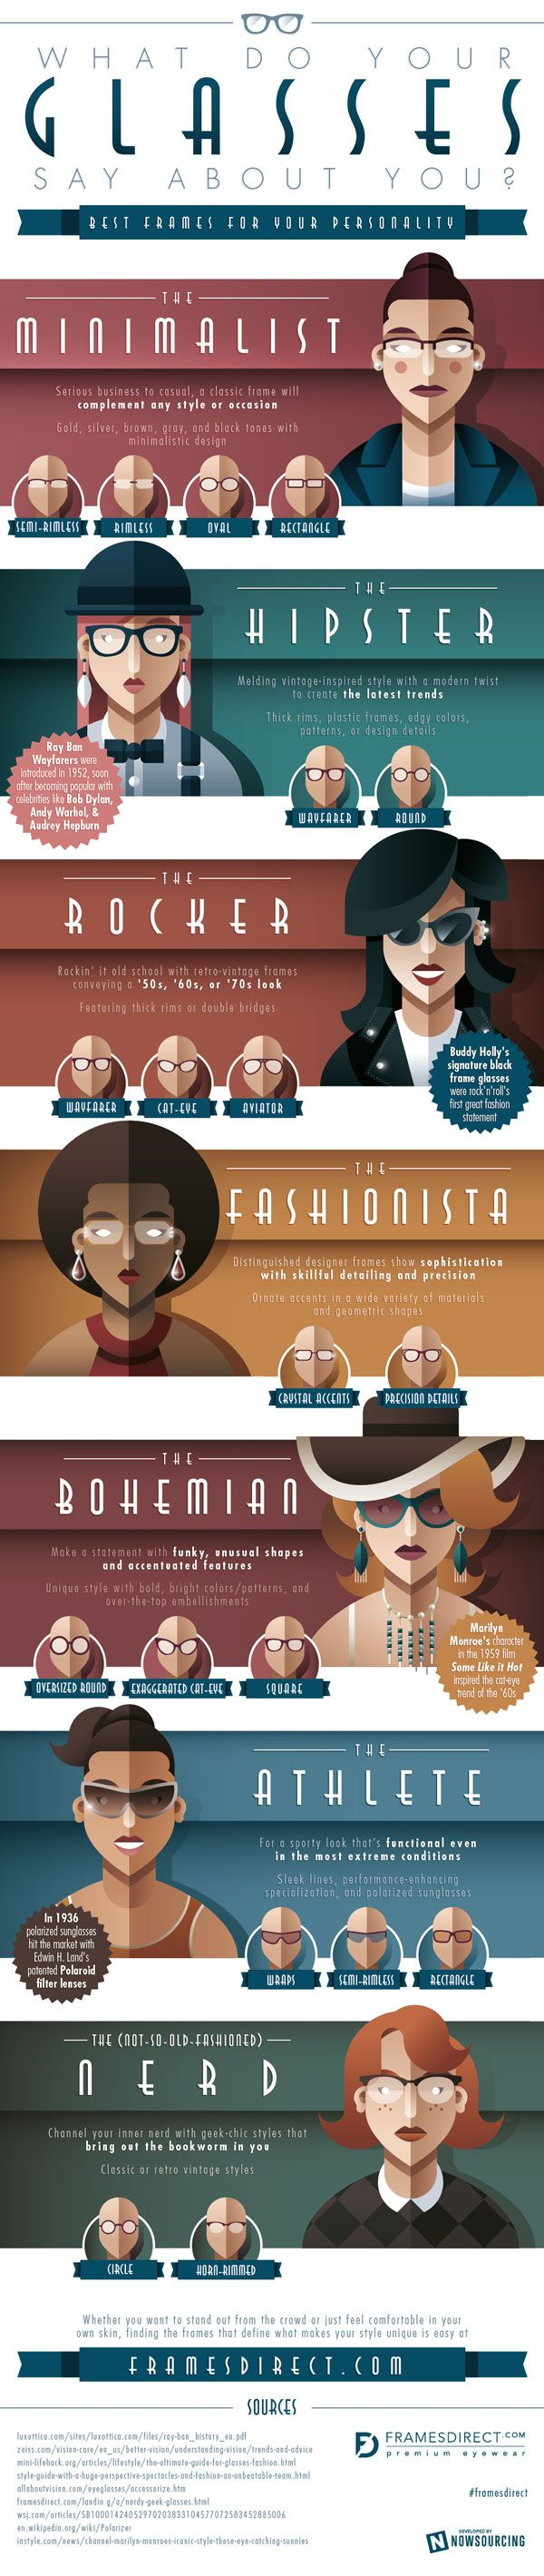 What Do Your Glasses Say About You? {Infographic} - Best Infographics